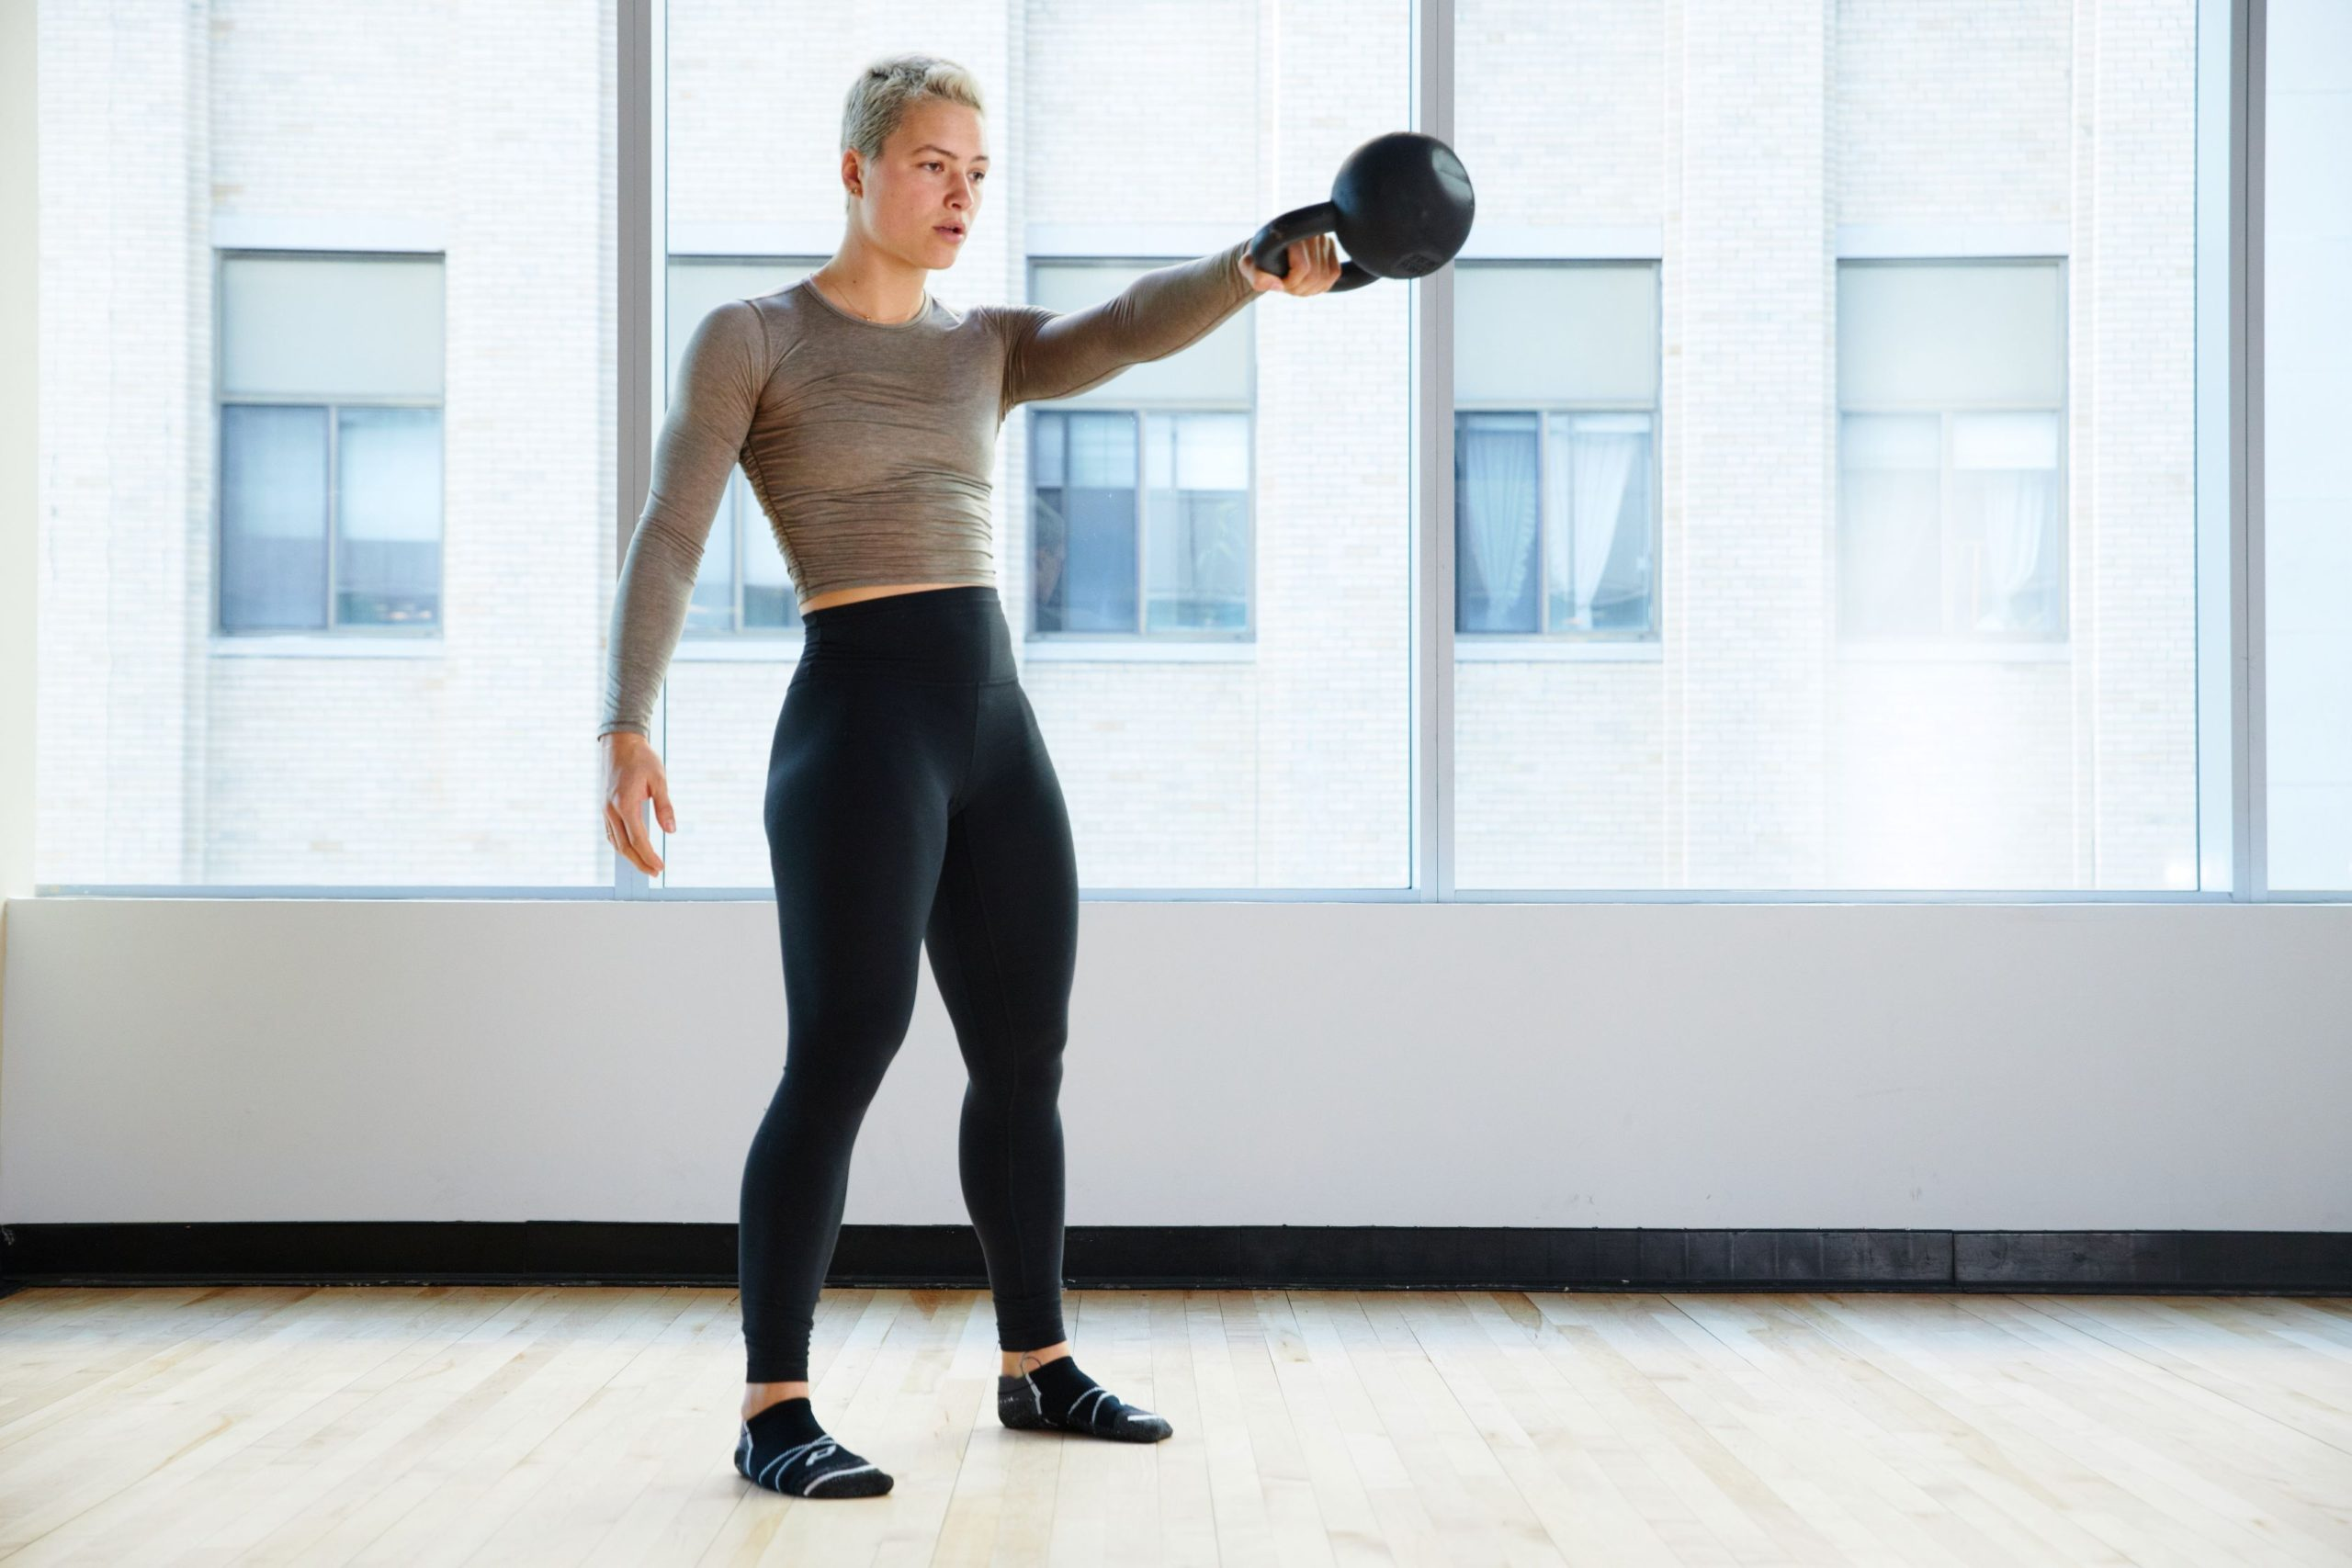 Kelley Matthews working out with a kettlebell and pedestal socks on